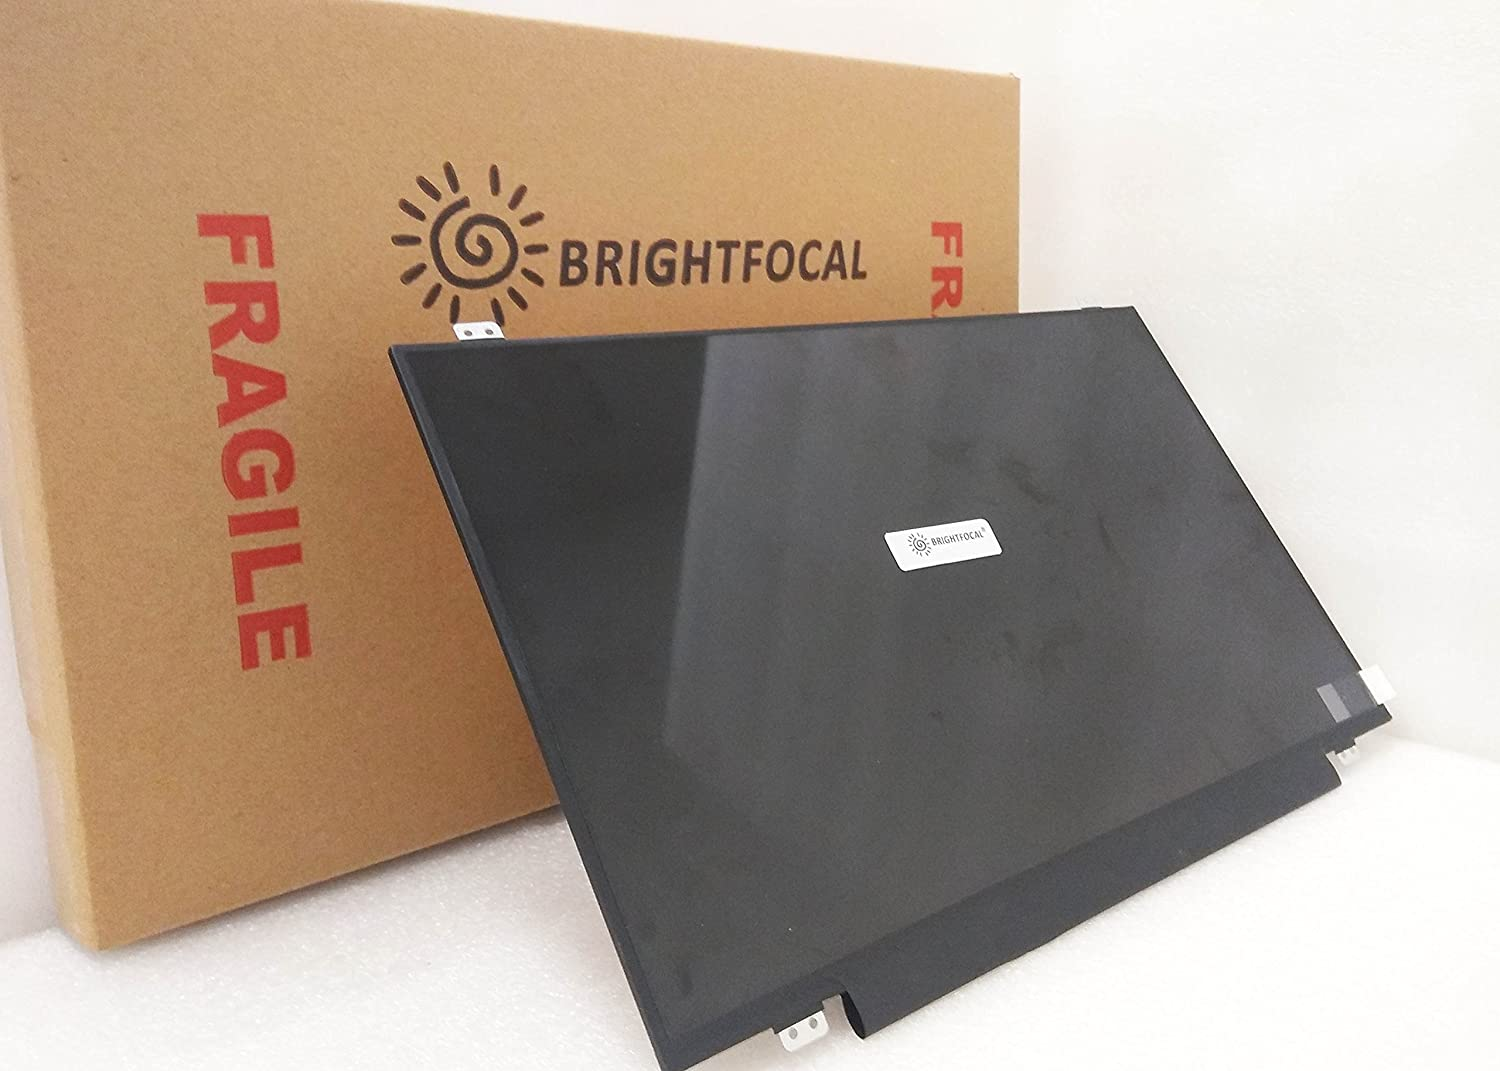 BRIGHTFOCAL New LCD Screen for Lenovo Chromebook S330 81JW0001US HD 1366x768 Replacement LCD LED Display Panel